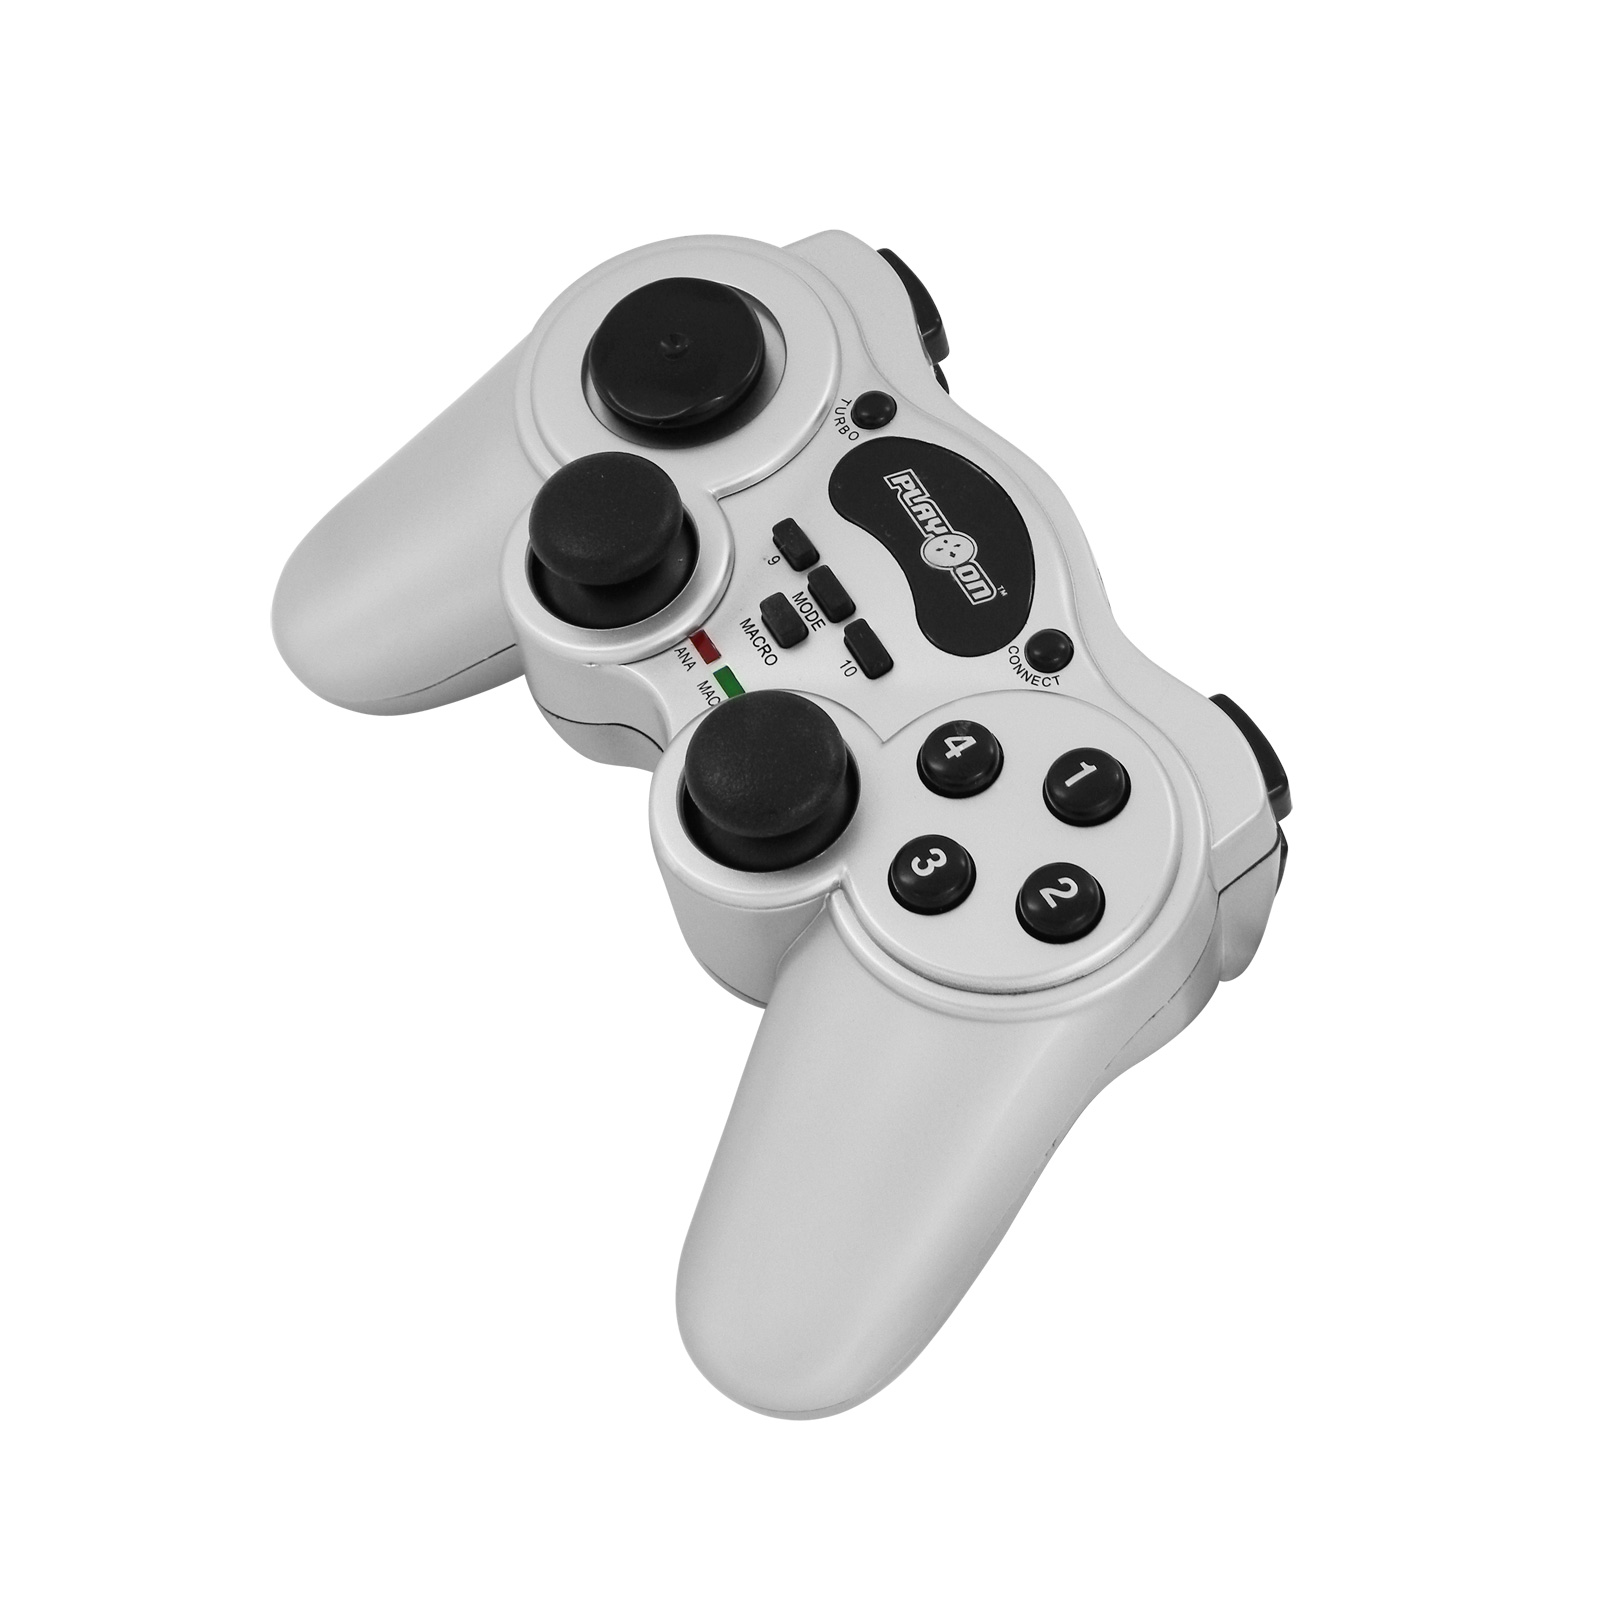 livepac office play on wireless powershock controller. Black Bedroom Furniture Sets. Home Design Ideas